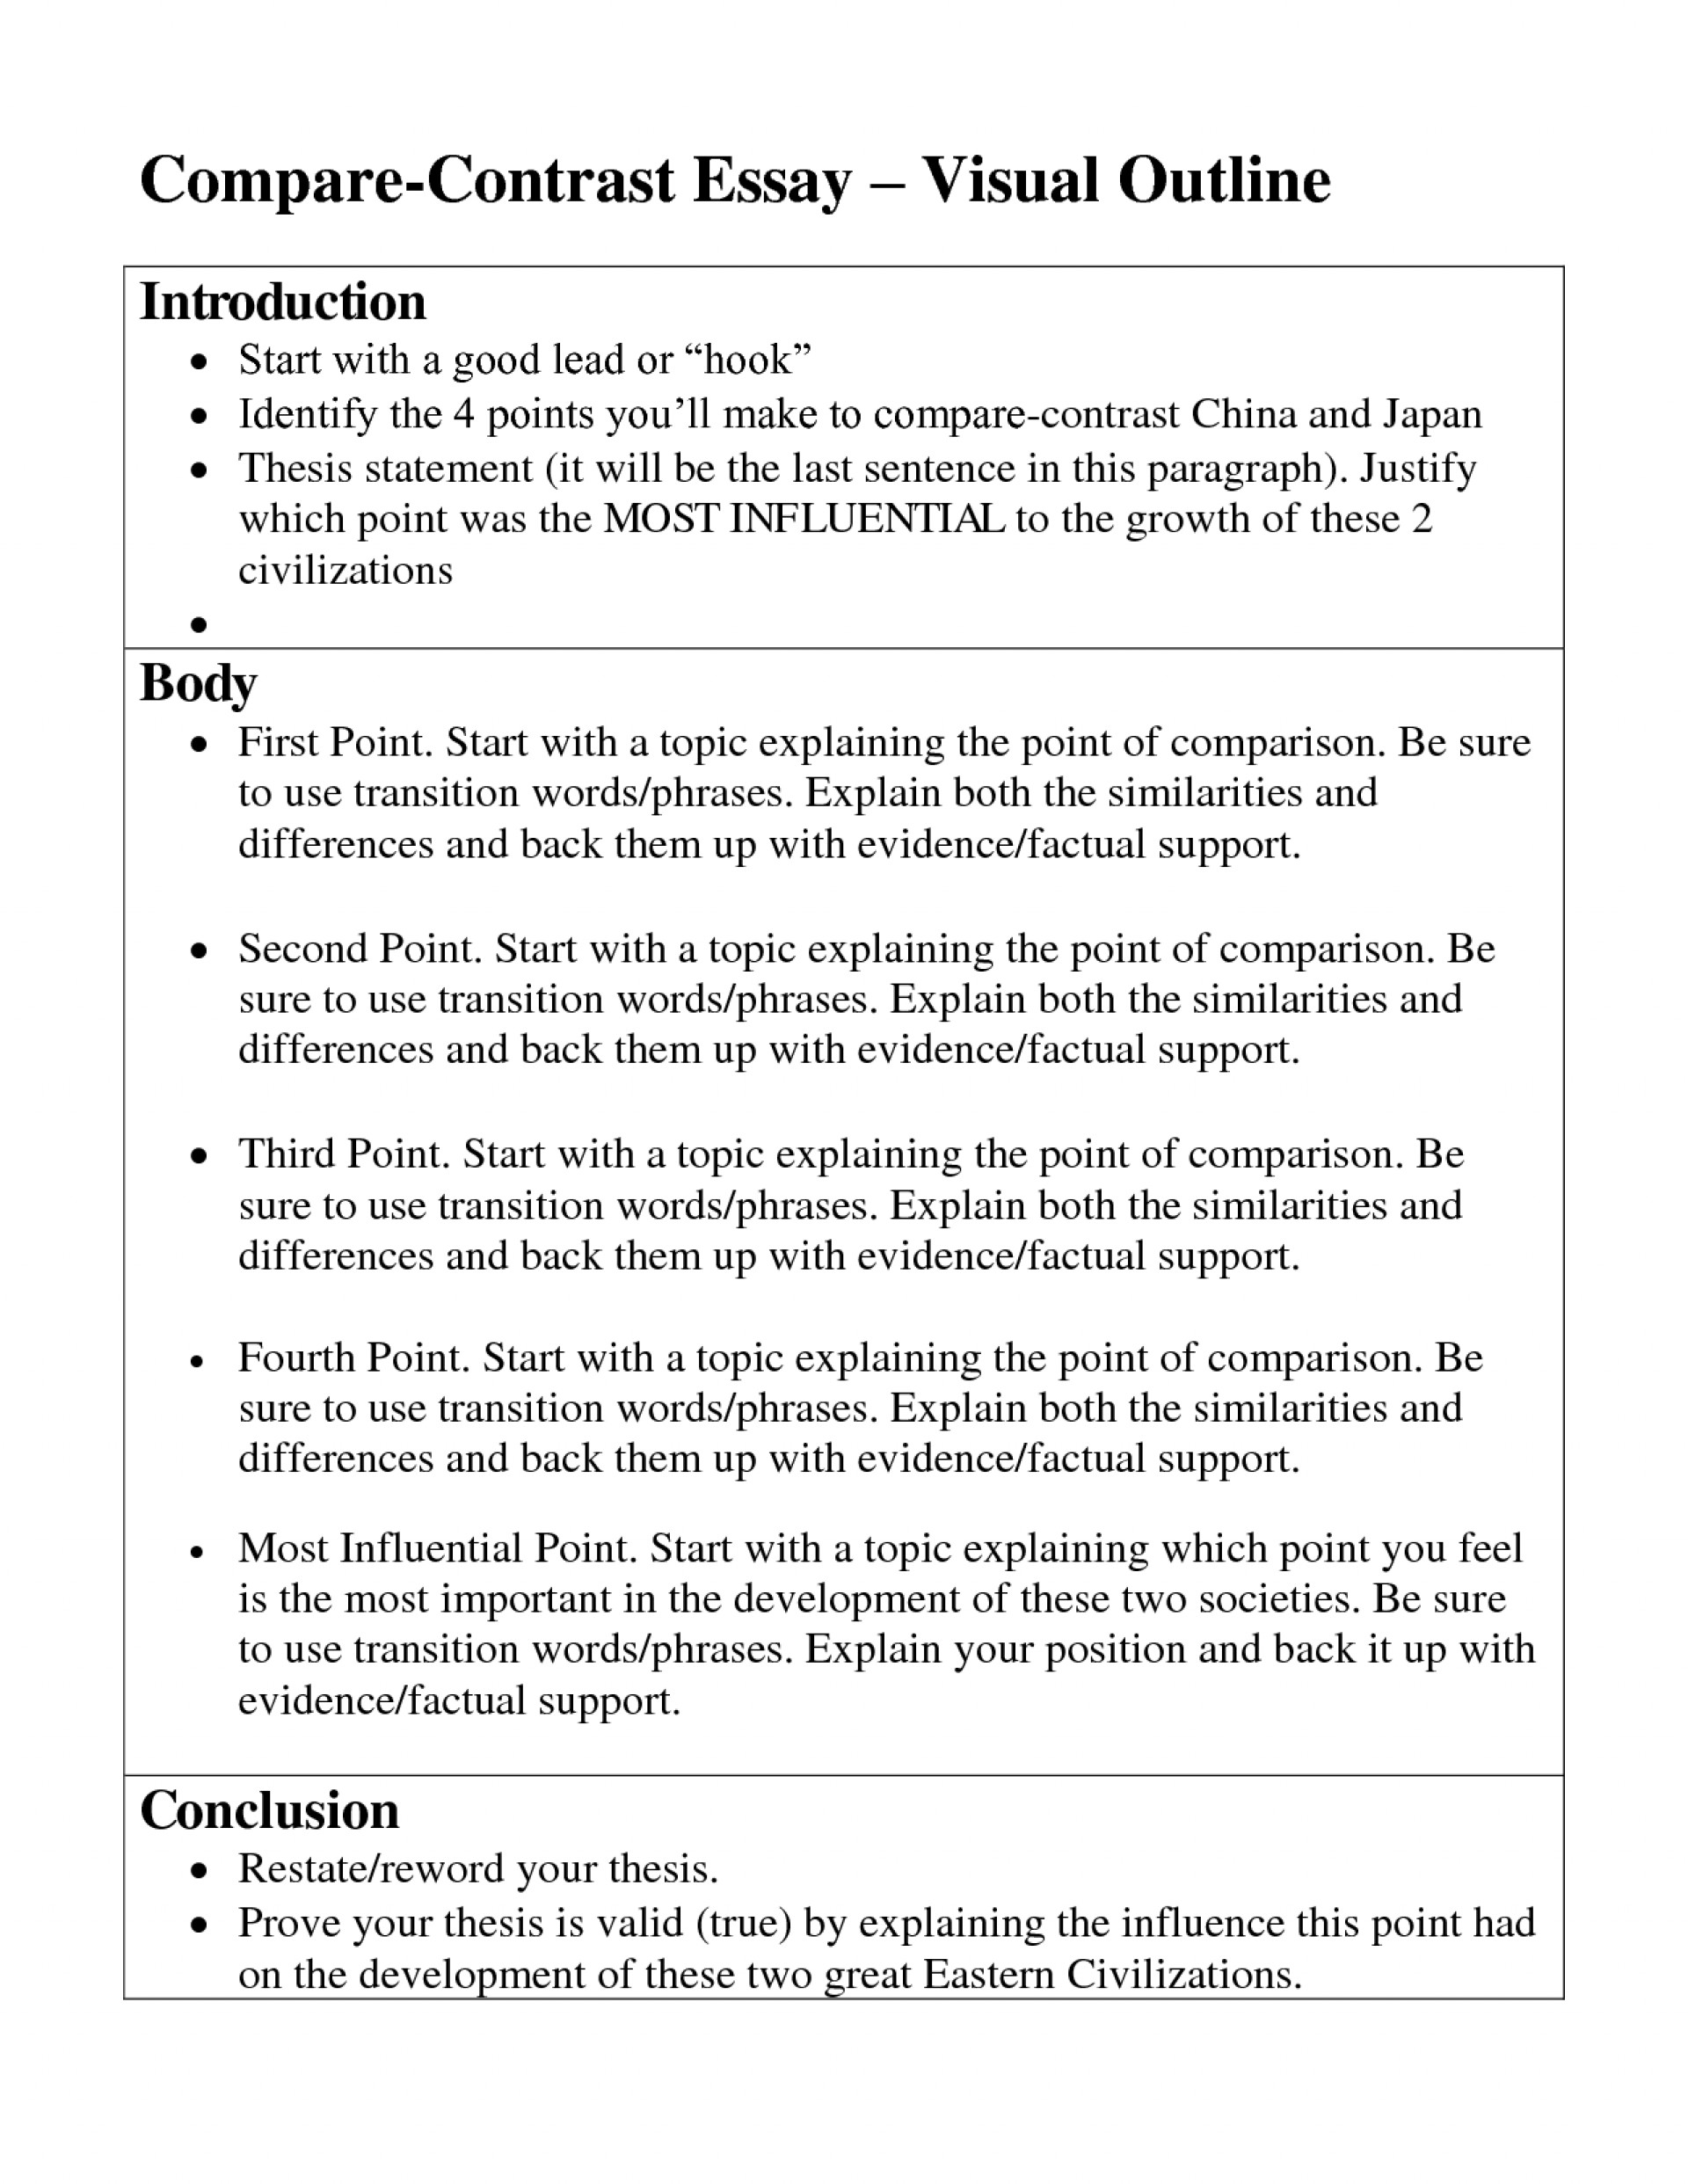 004 Comparison And Contrast Essay Outline Impressive Compare 5th Grade High School Template 1920